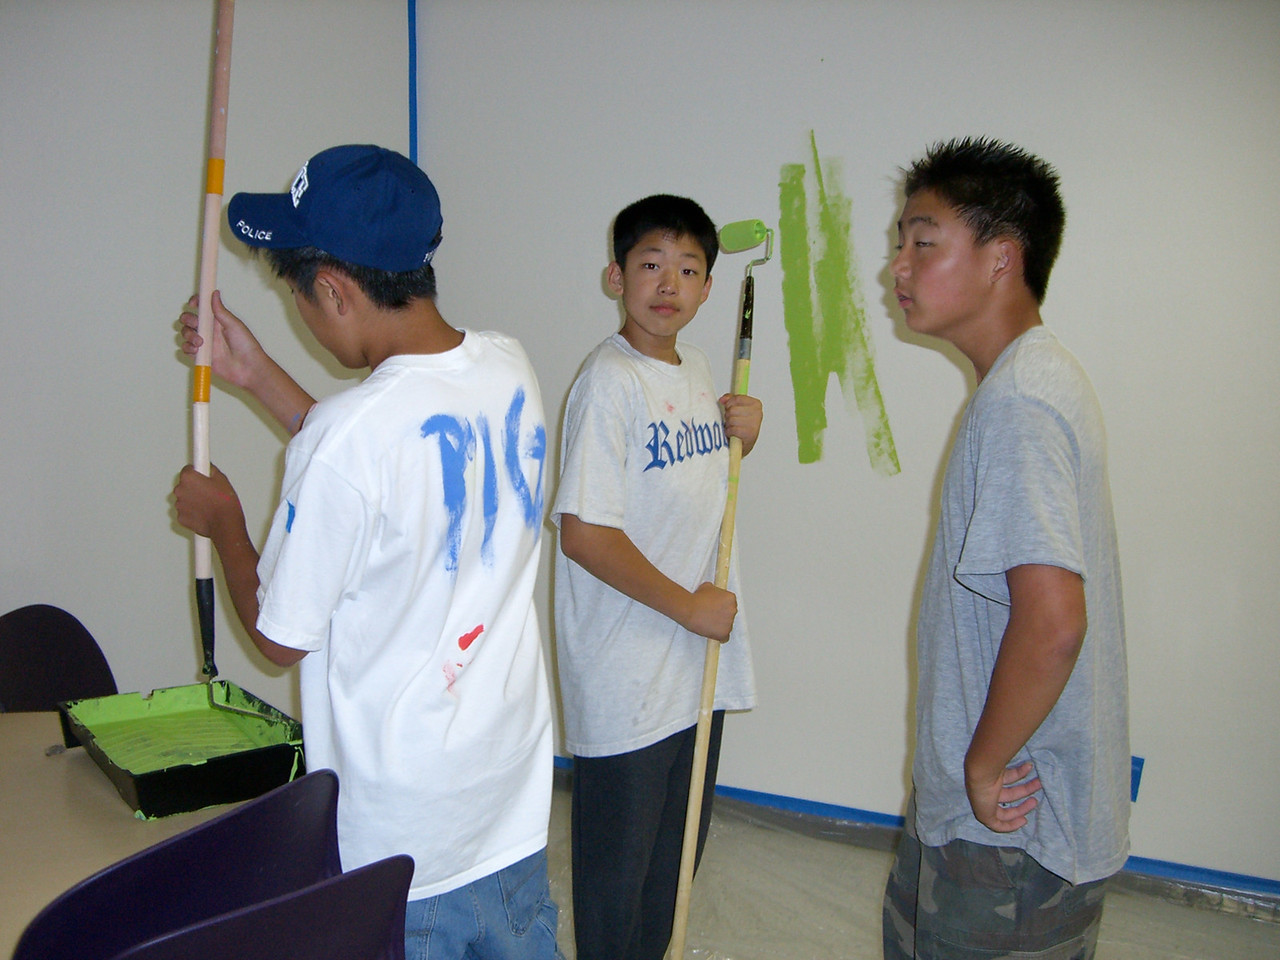 2005 A Space Oddity - Paul Kang, Jay, & Philip Lee discover tools